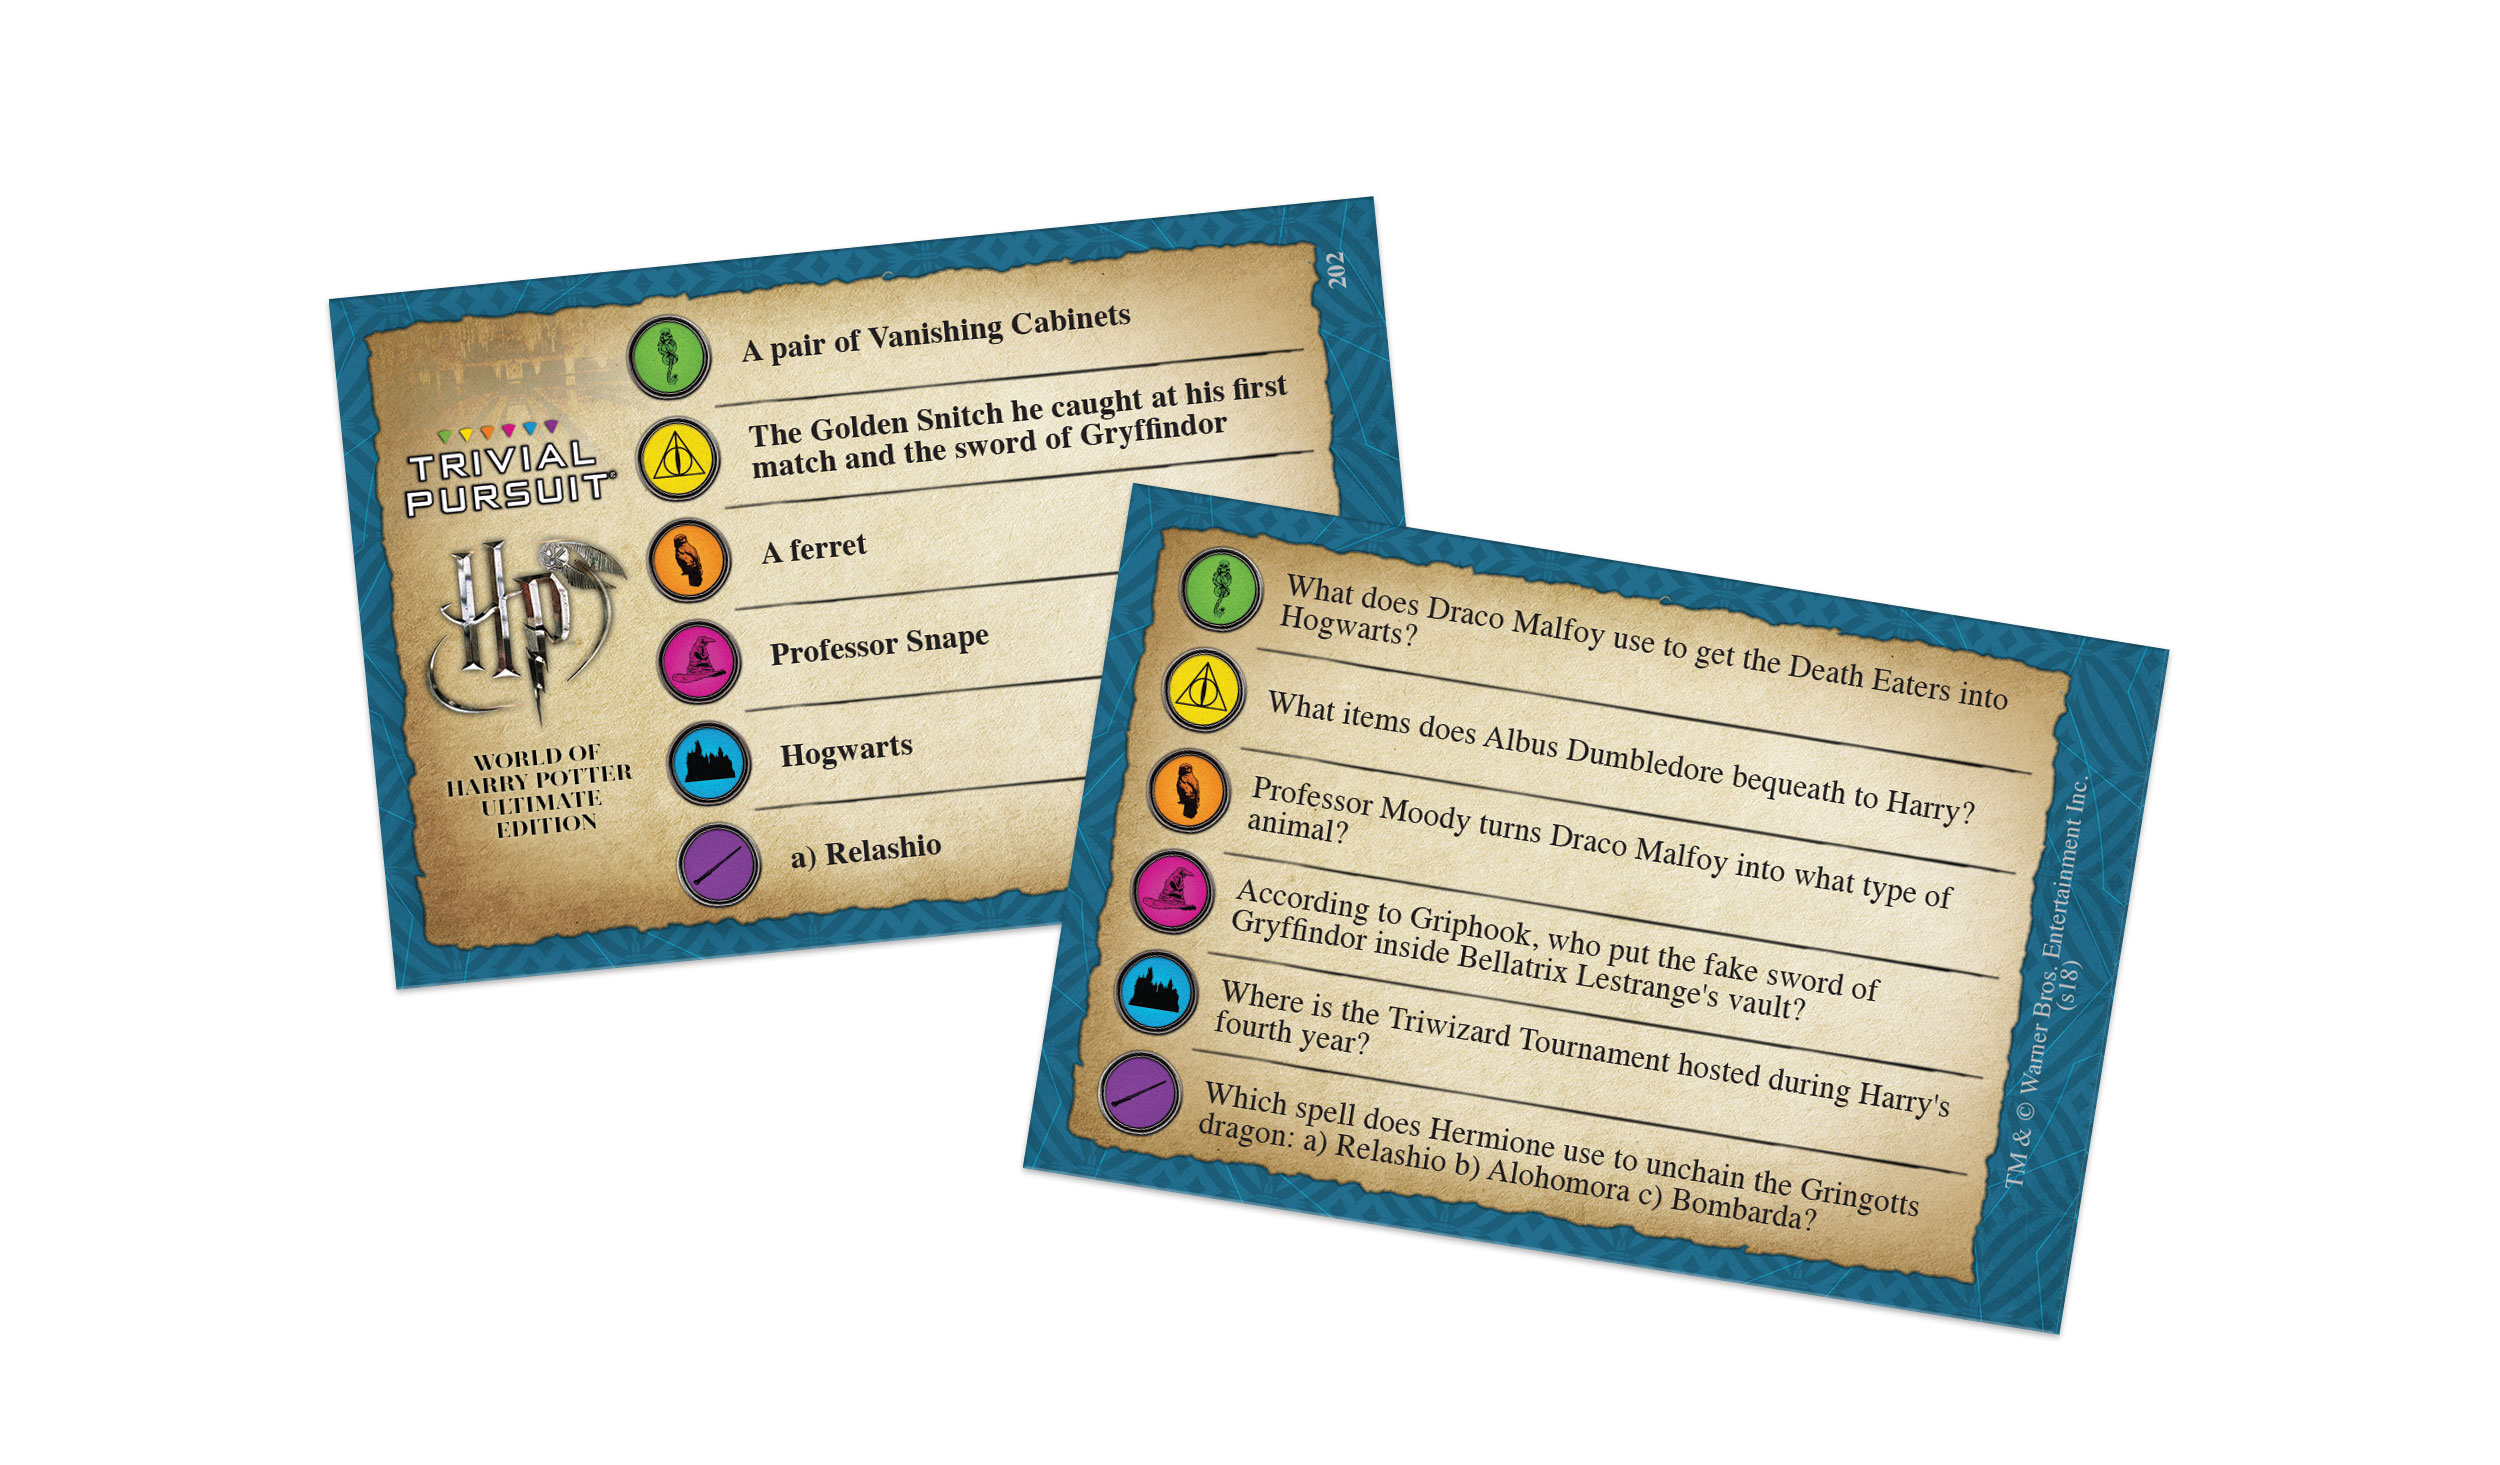 Trivial Pursuit: World of Harry Potter card example